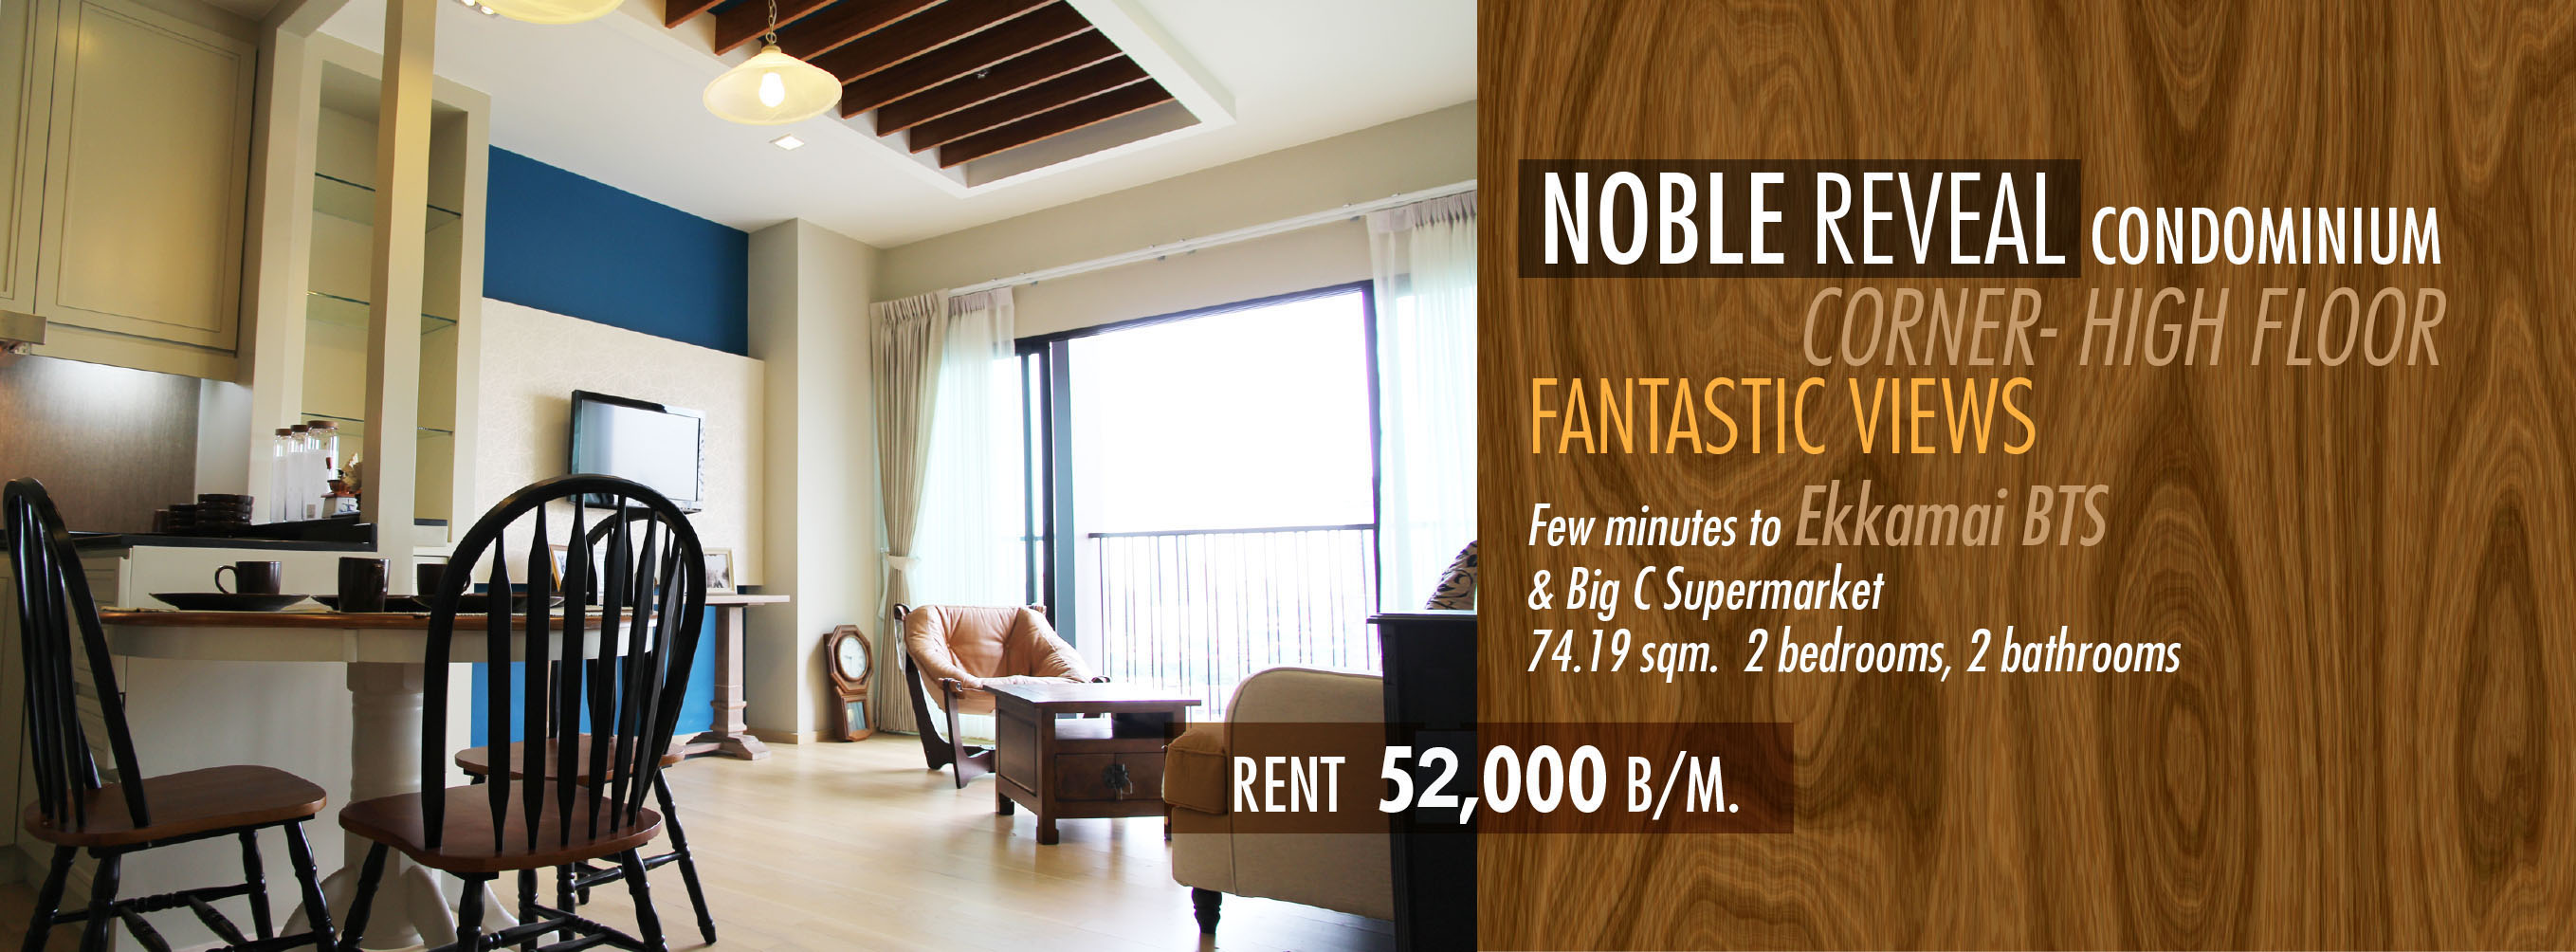 noble-reveal-condominium-for-rent-ekkamai-sukhumvit-1517350